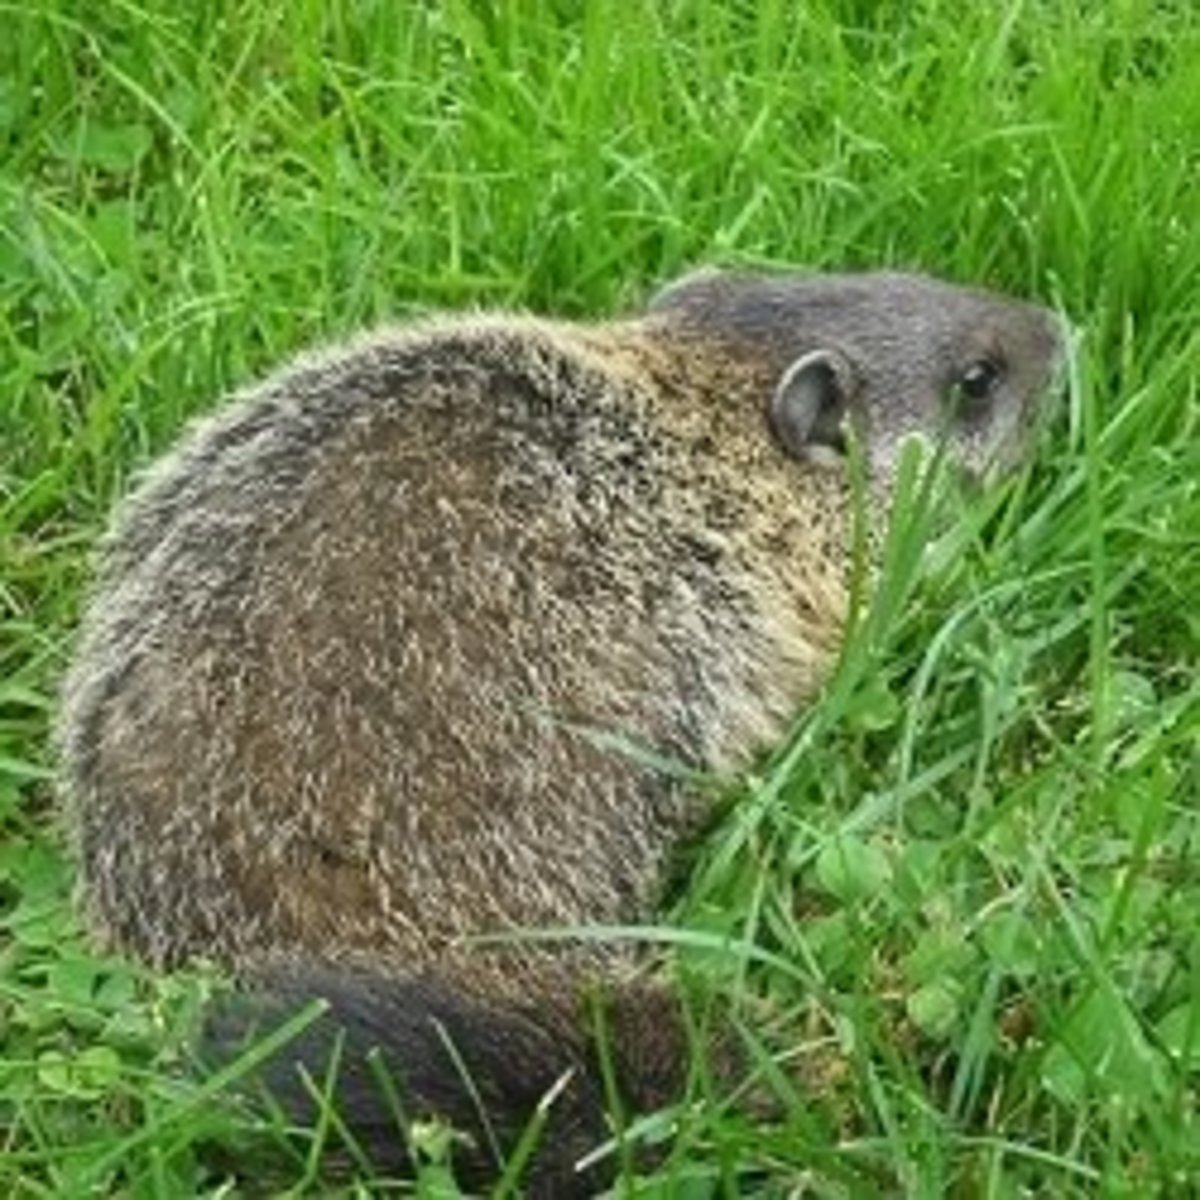 One of the baby woodchucks in our backyard at Royalton Bed and Breakfast